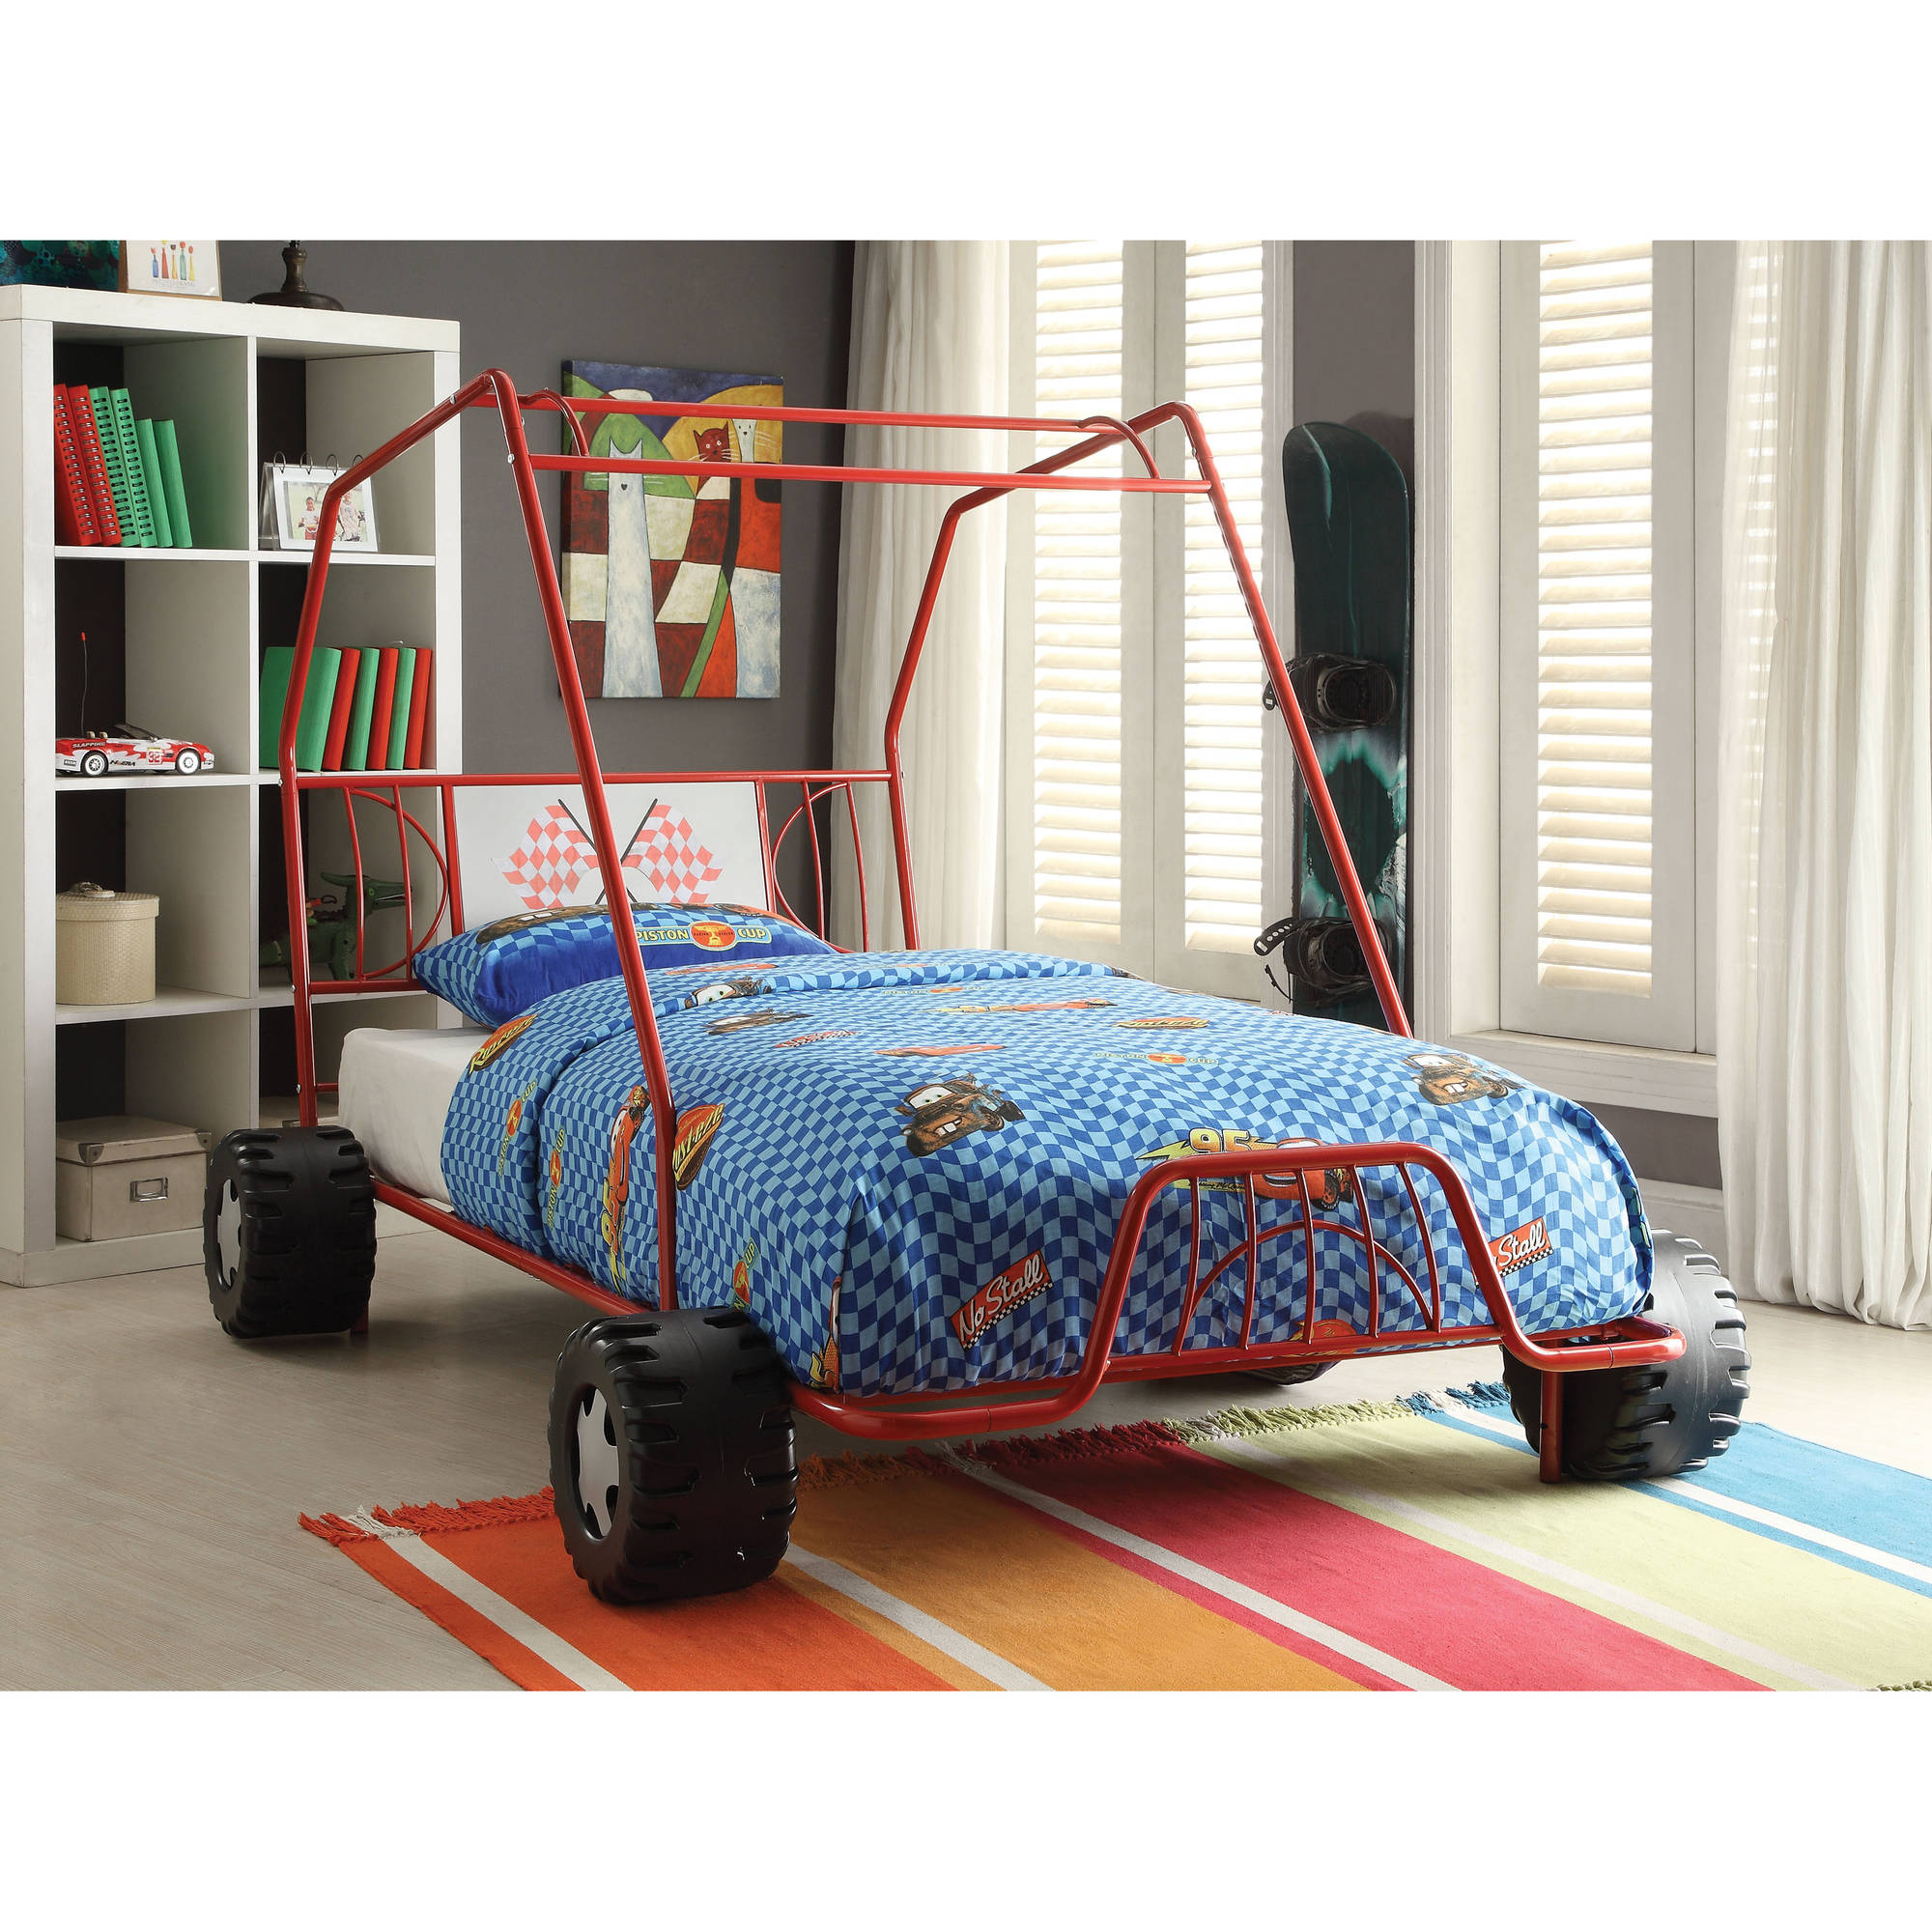 ACME Xander Twin Bed, Red, Box 1 of 2